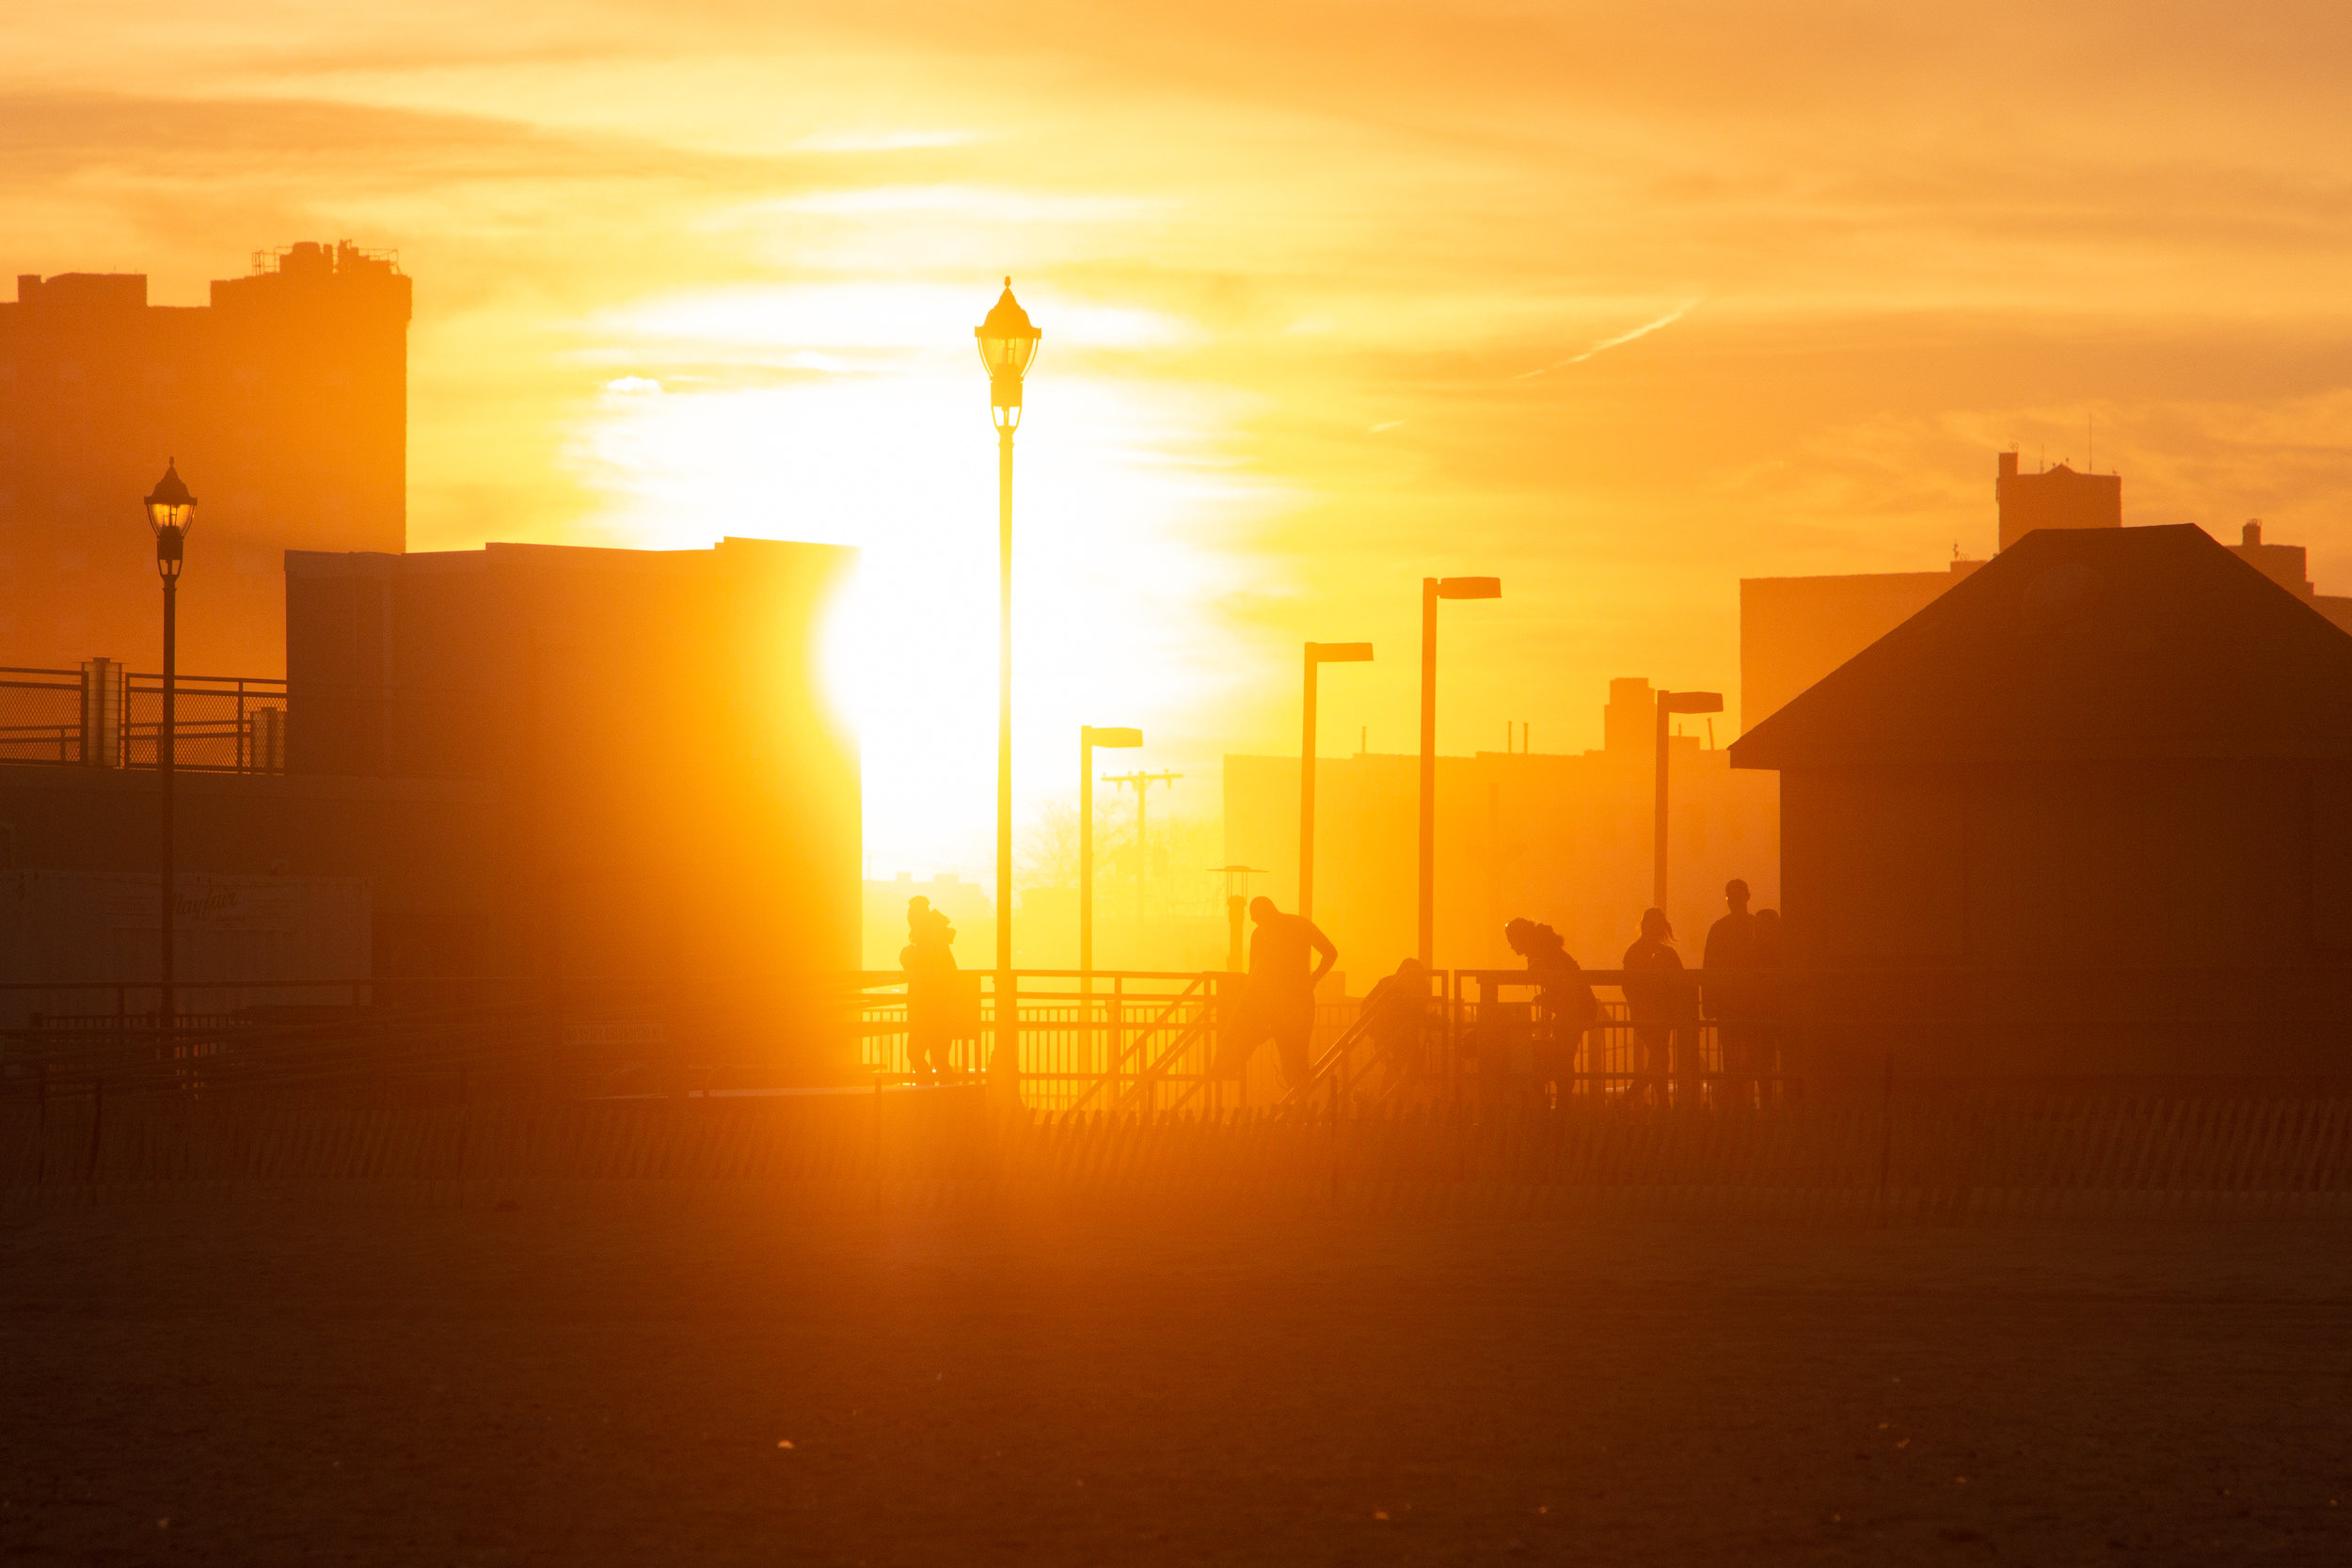 People on boardwalk at sunset in Asbury Park, New Jersey. Photo by Kayleigh Ann Archbold.